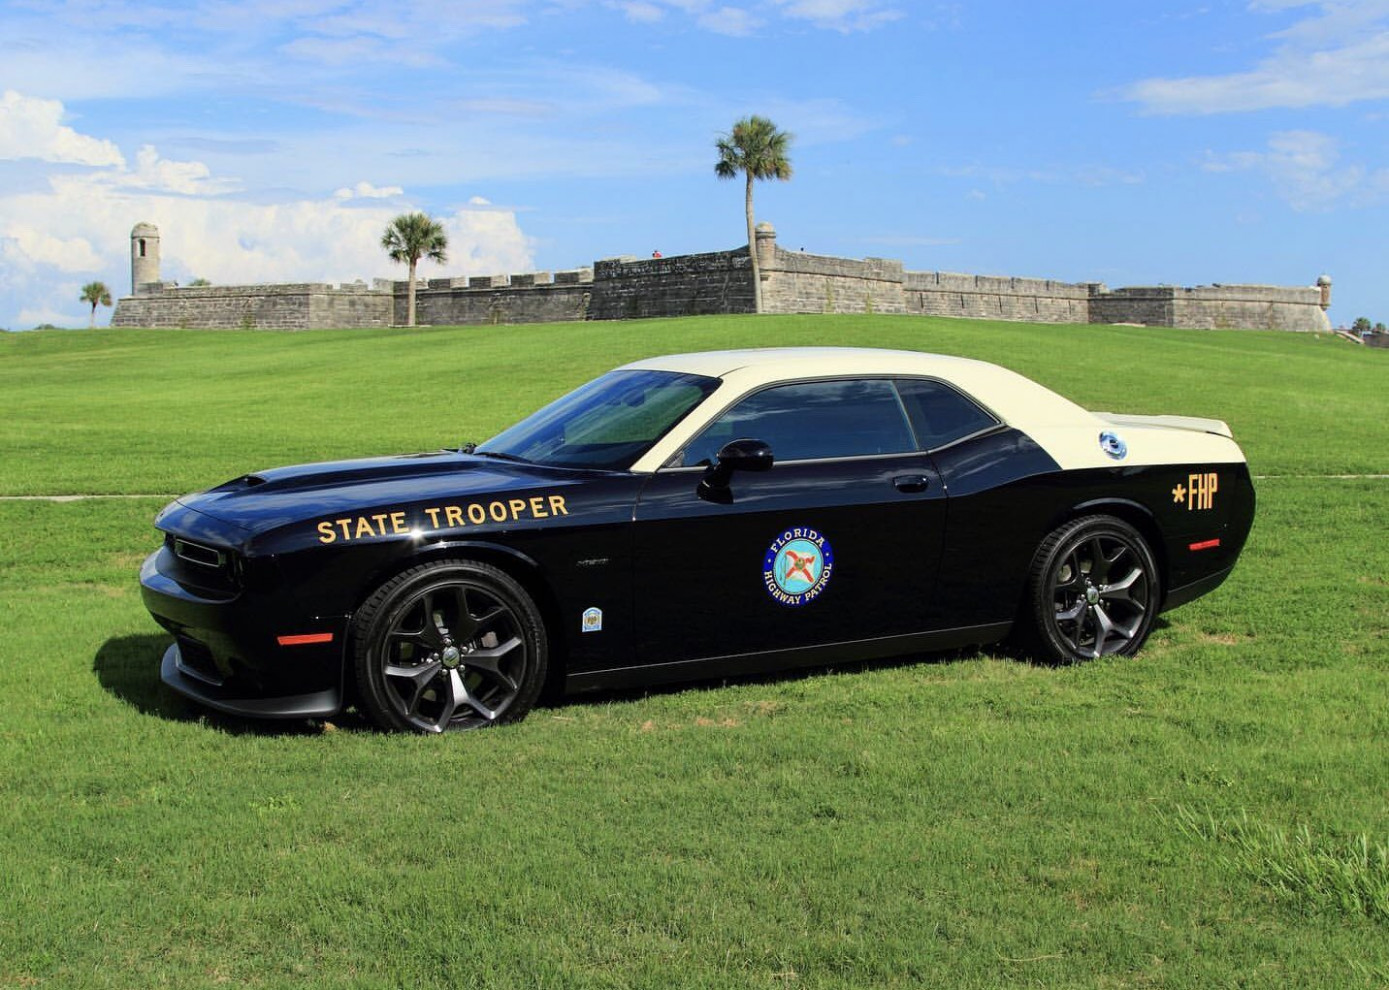 Florida Highway Patrol enlists 4 Dodge Challenger as latest ..